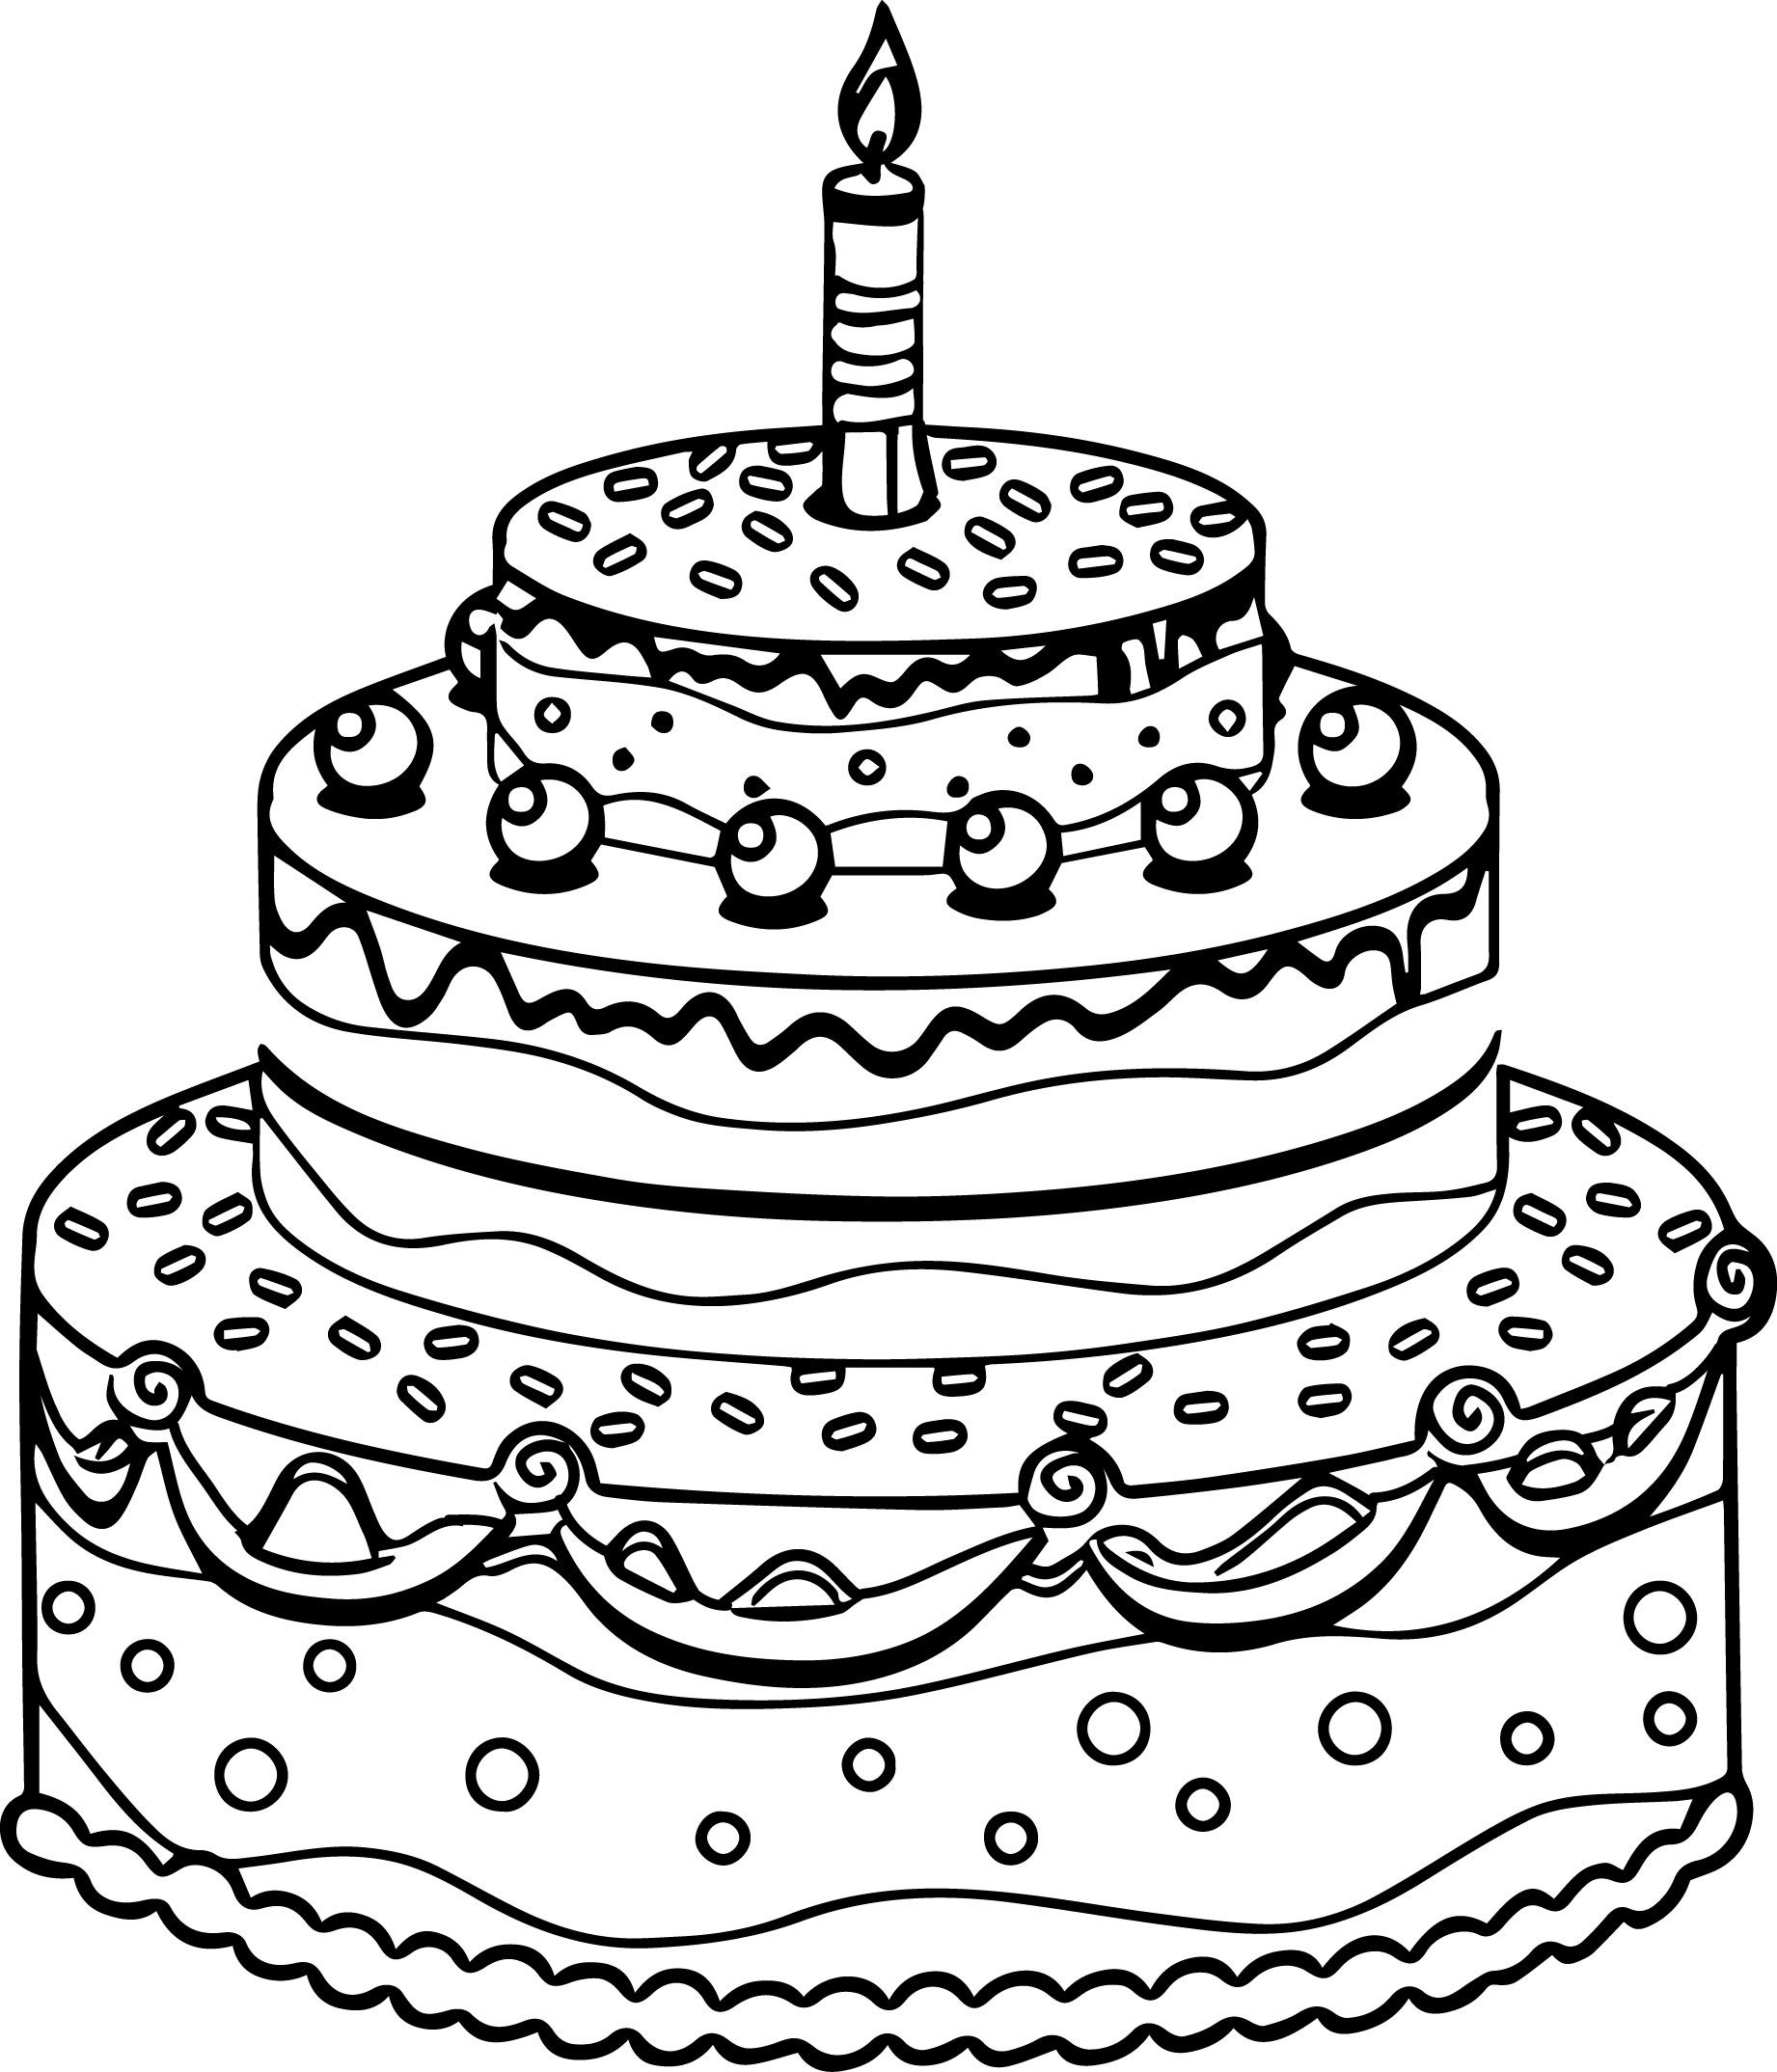 coloring pages cake strawberry coloring pages best coloring pages for kids pages coloring cake